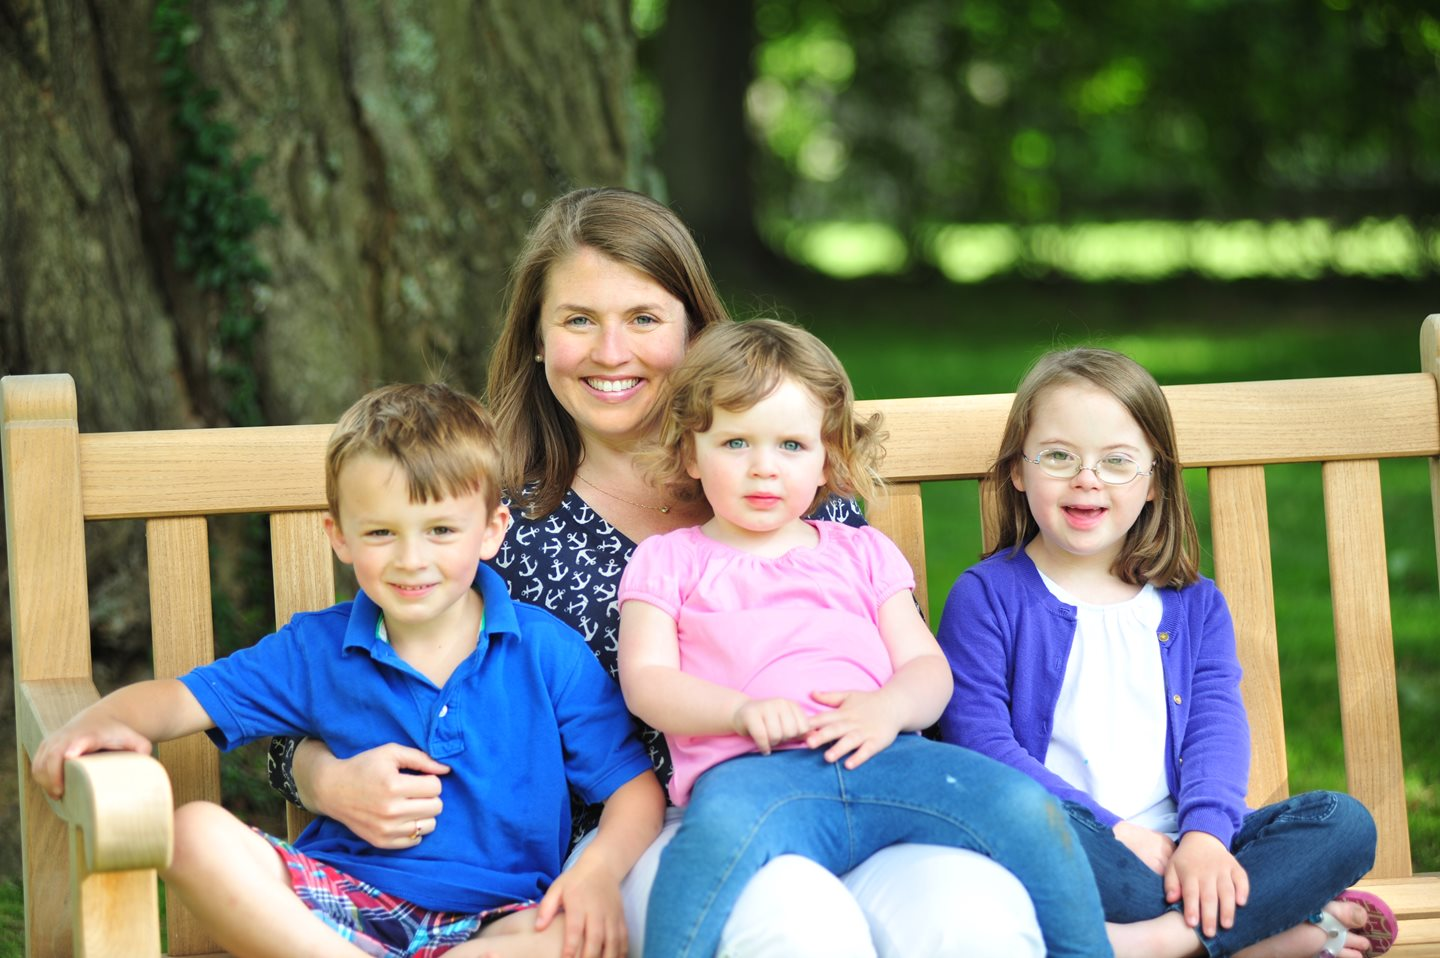 How to Talk to Parents of Children With Down Syndrome | Thin